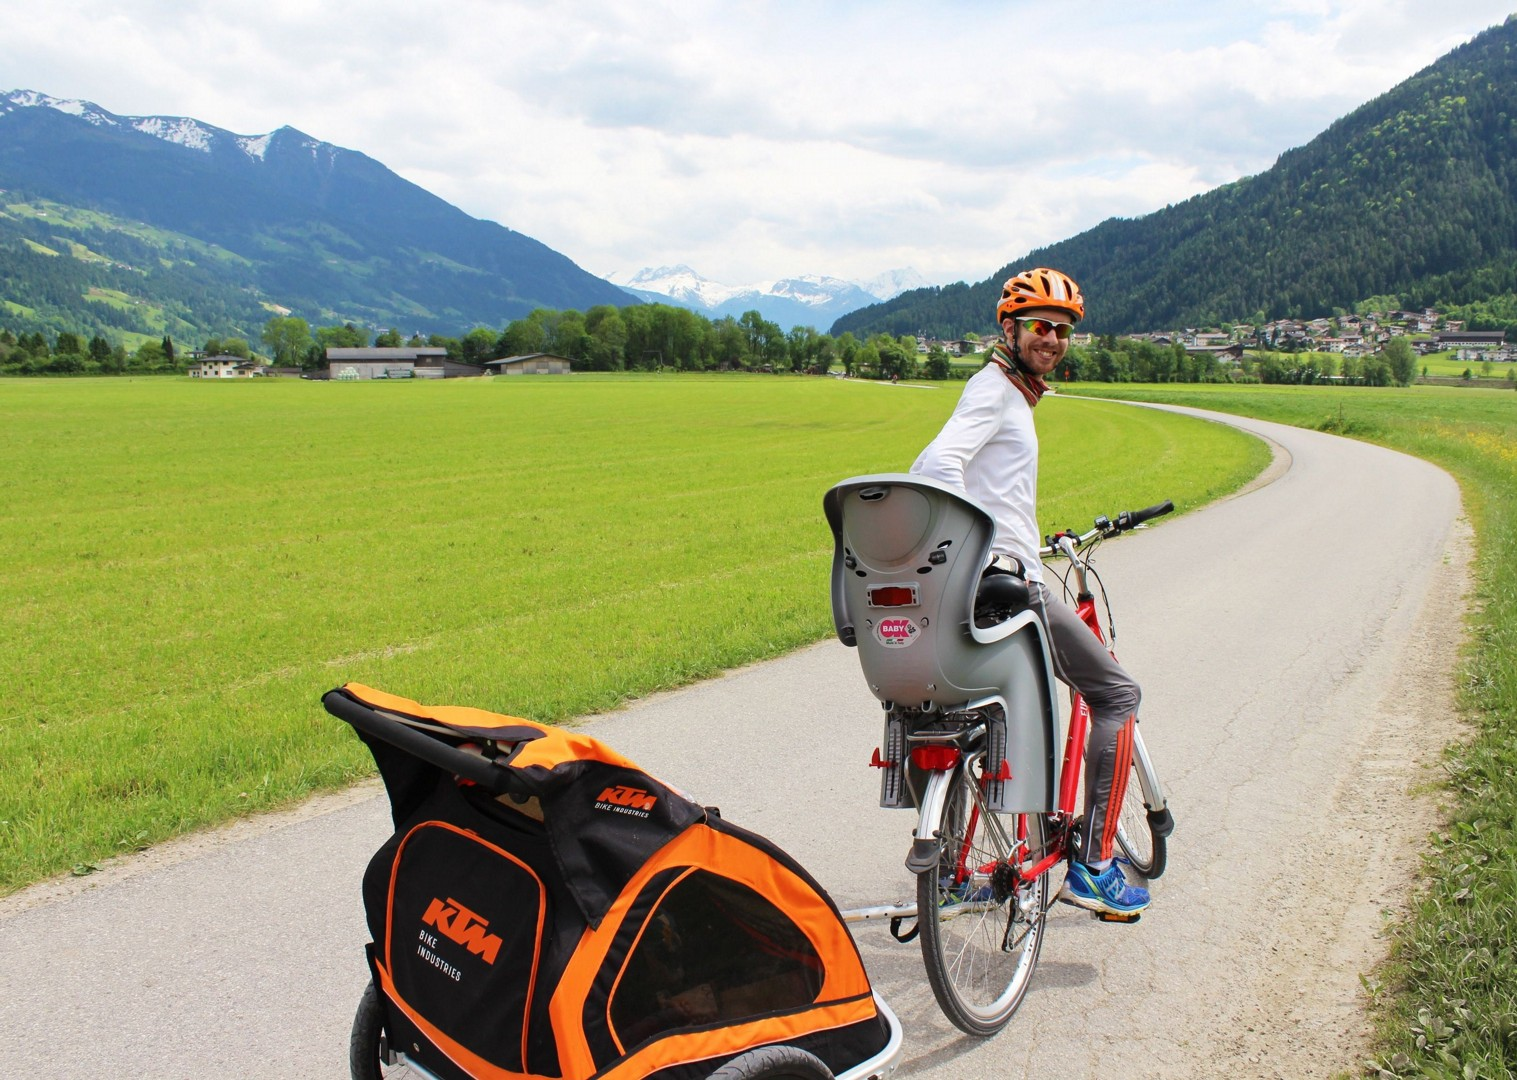 bike-child-tag-along-austria-mountains-family.jpg - NEW! Austria - Tauern Valleys - Self-Guided Family Cycling Holiday - Family Cycling